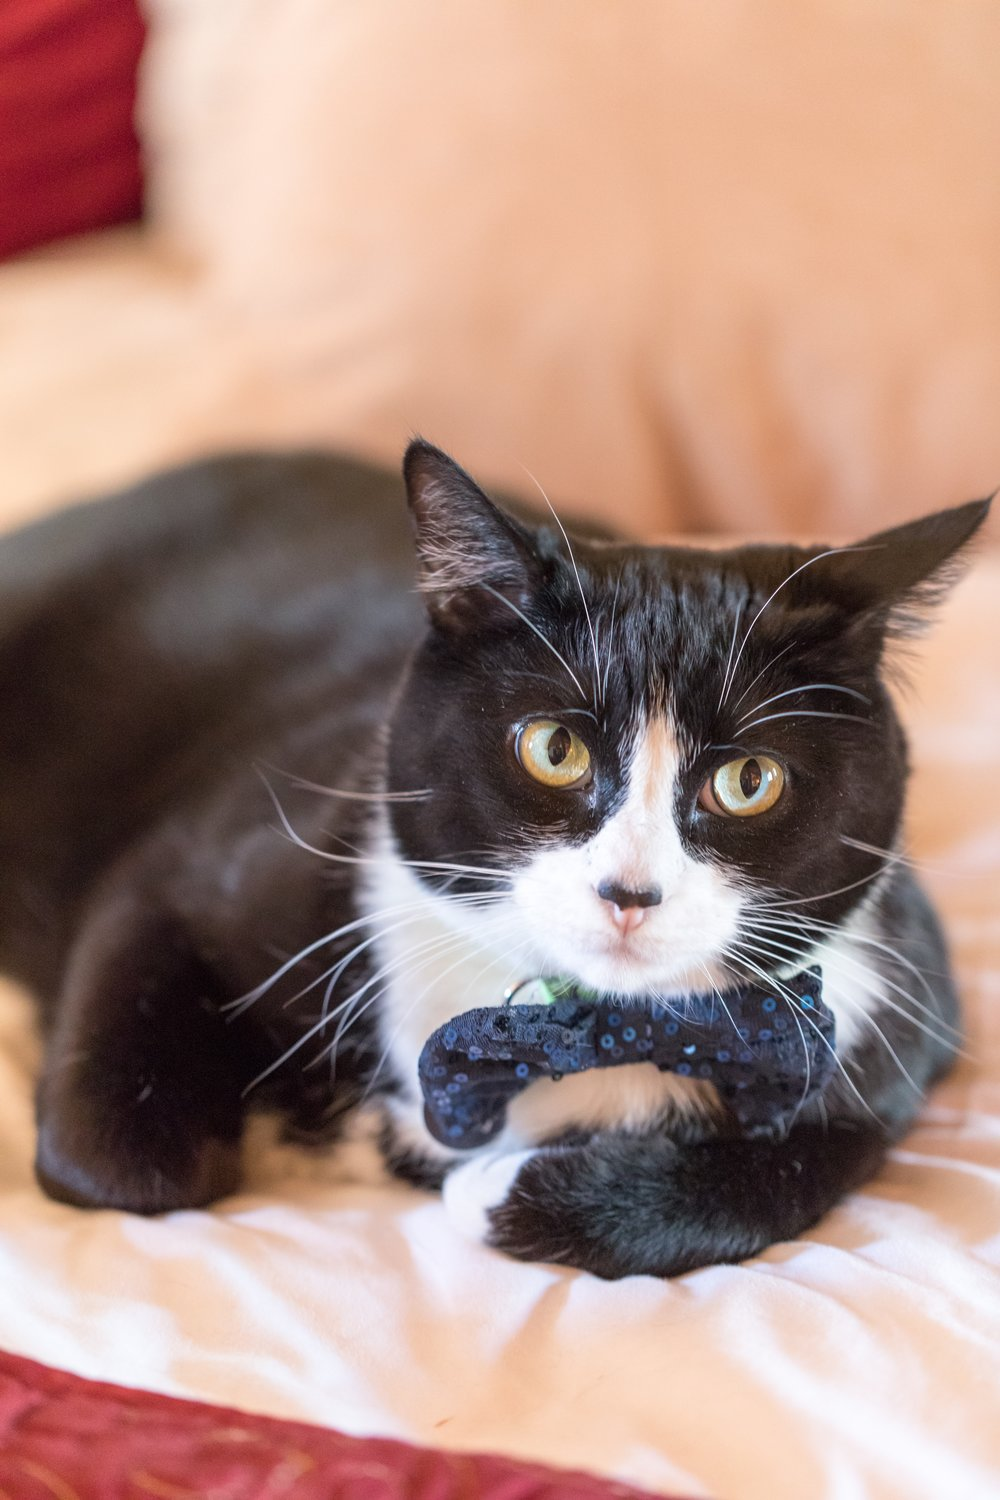 One of their two fur babies in a bow tie -- cute!